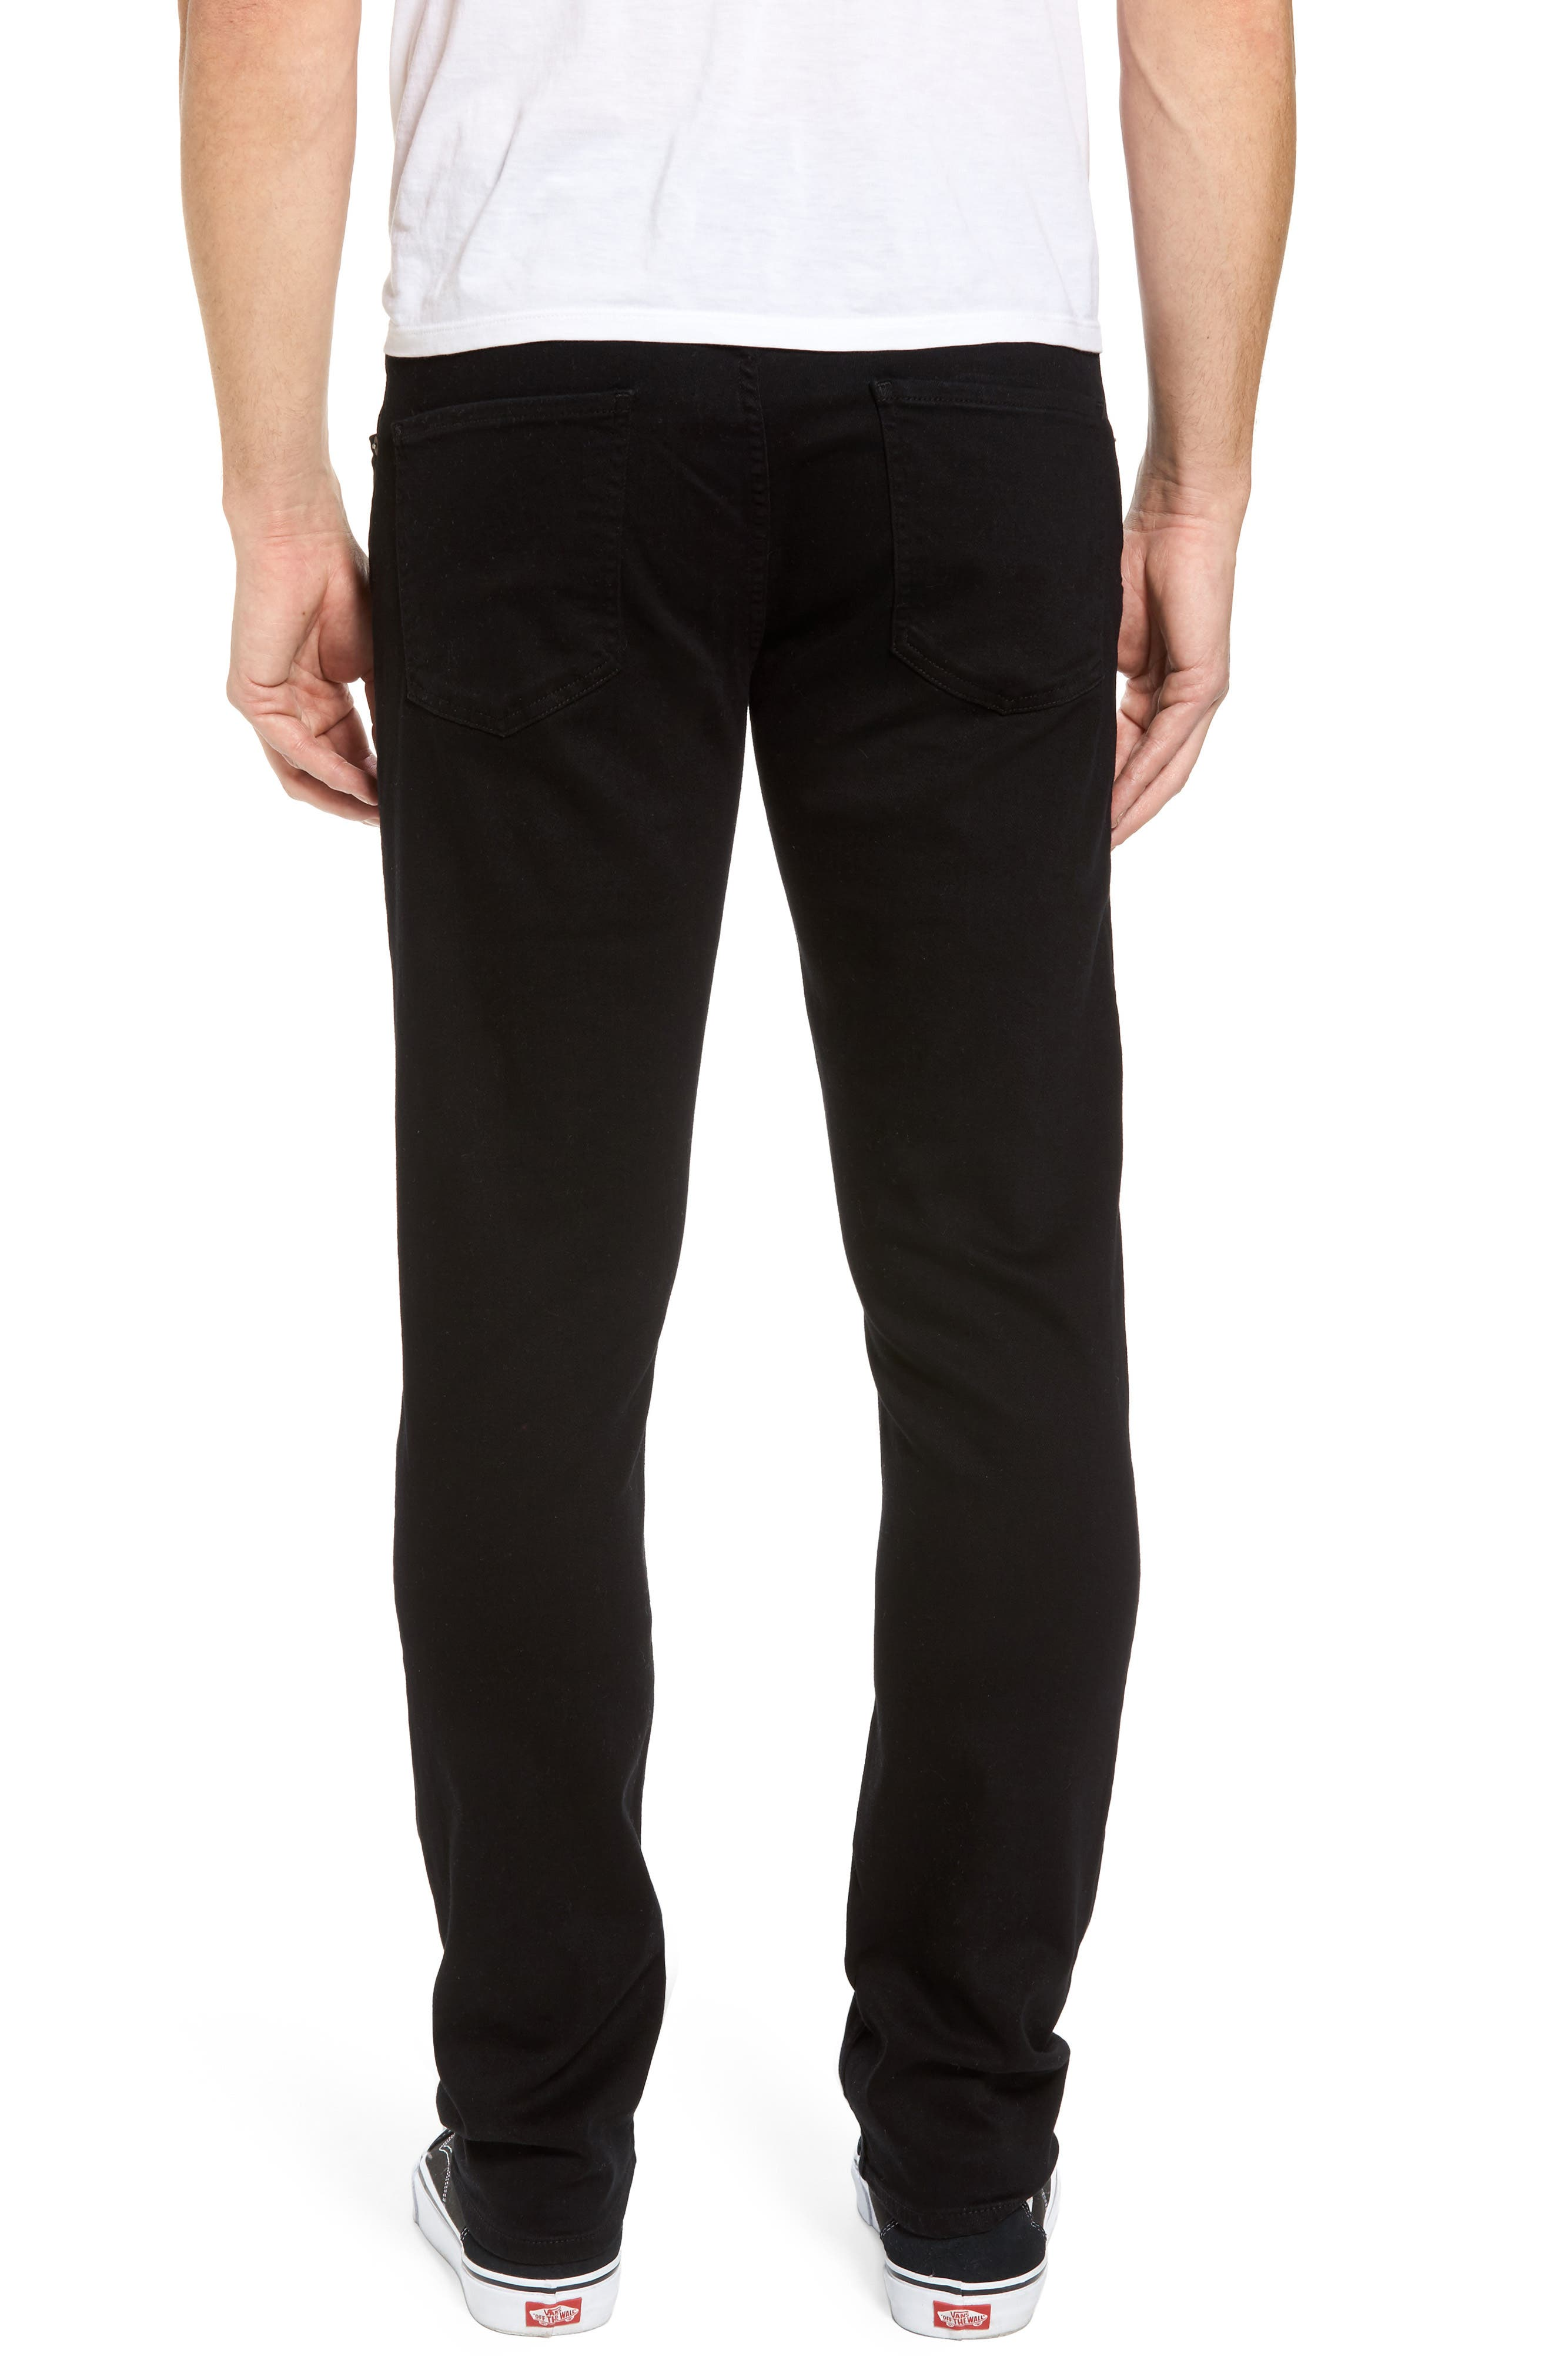 Bowery Slim Fit Jeans,                             Alternate thumbnail 2, color,                             007